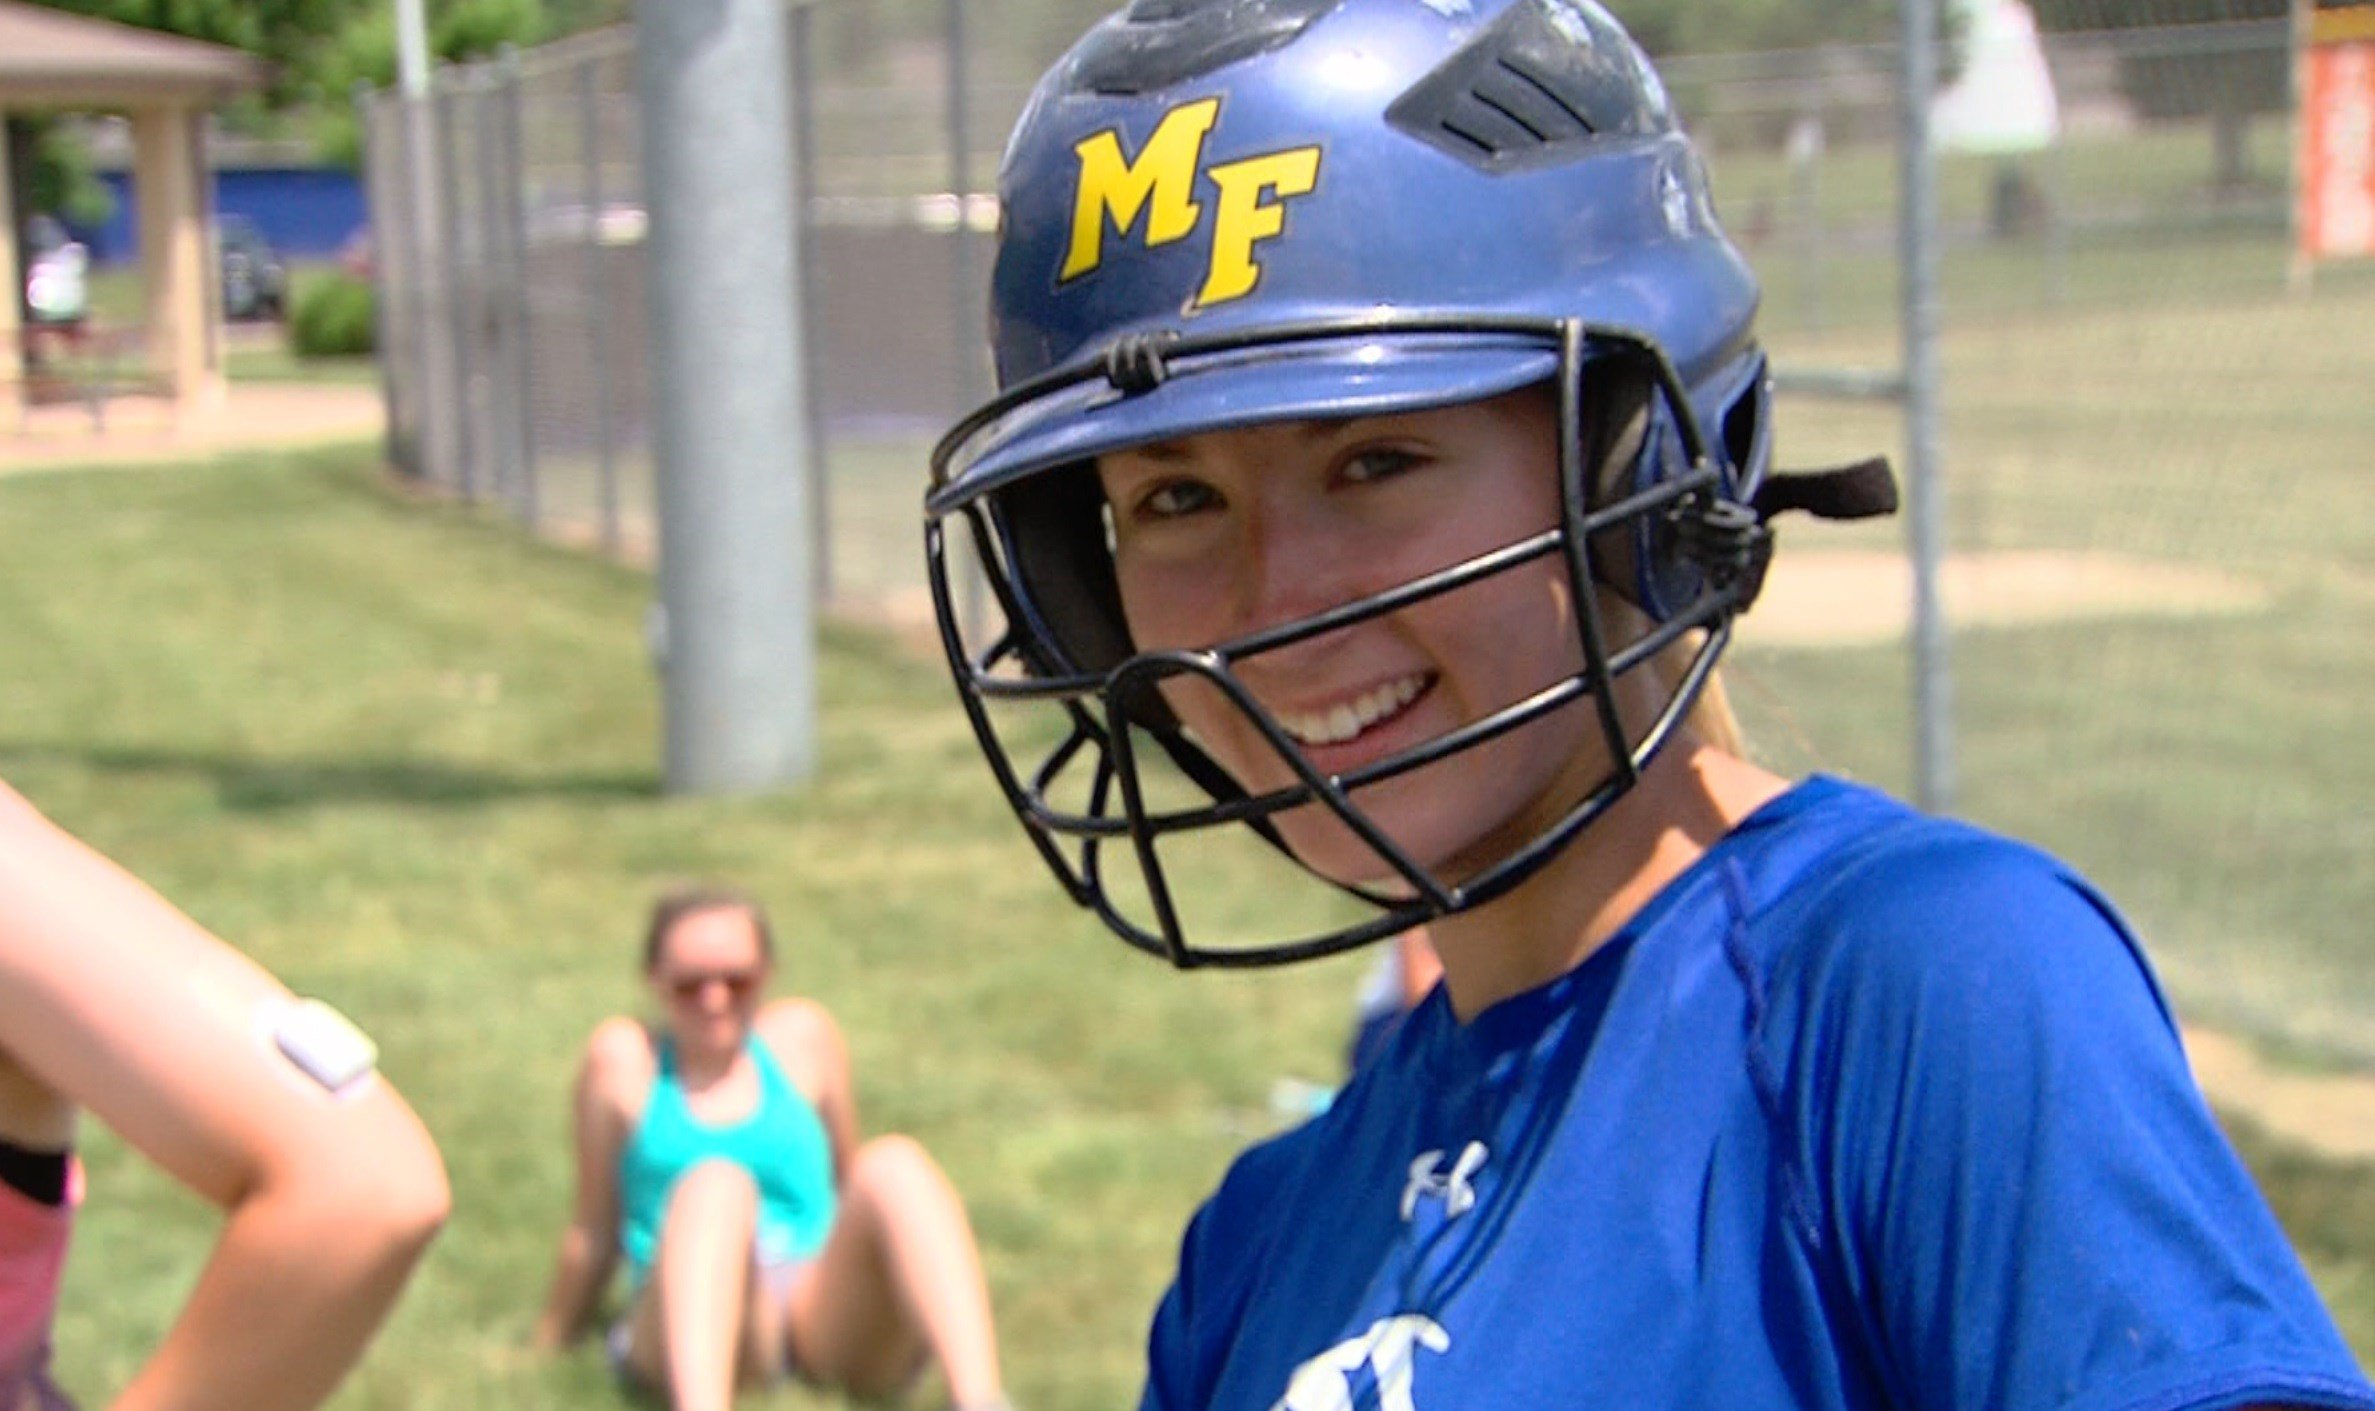 Maroa-Forsyth senior Kate Beckemeyer has thrown four no-hitters for the Trojans this season. She will play at Parkland College next season.